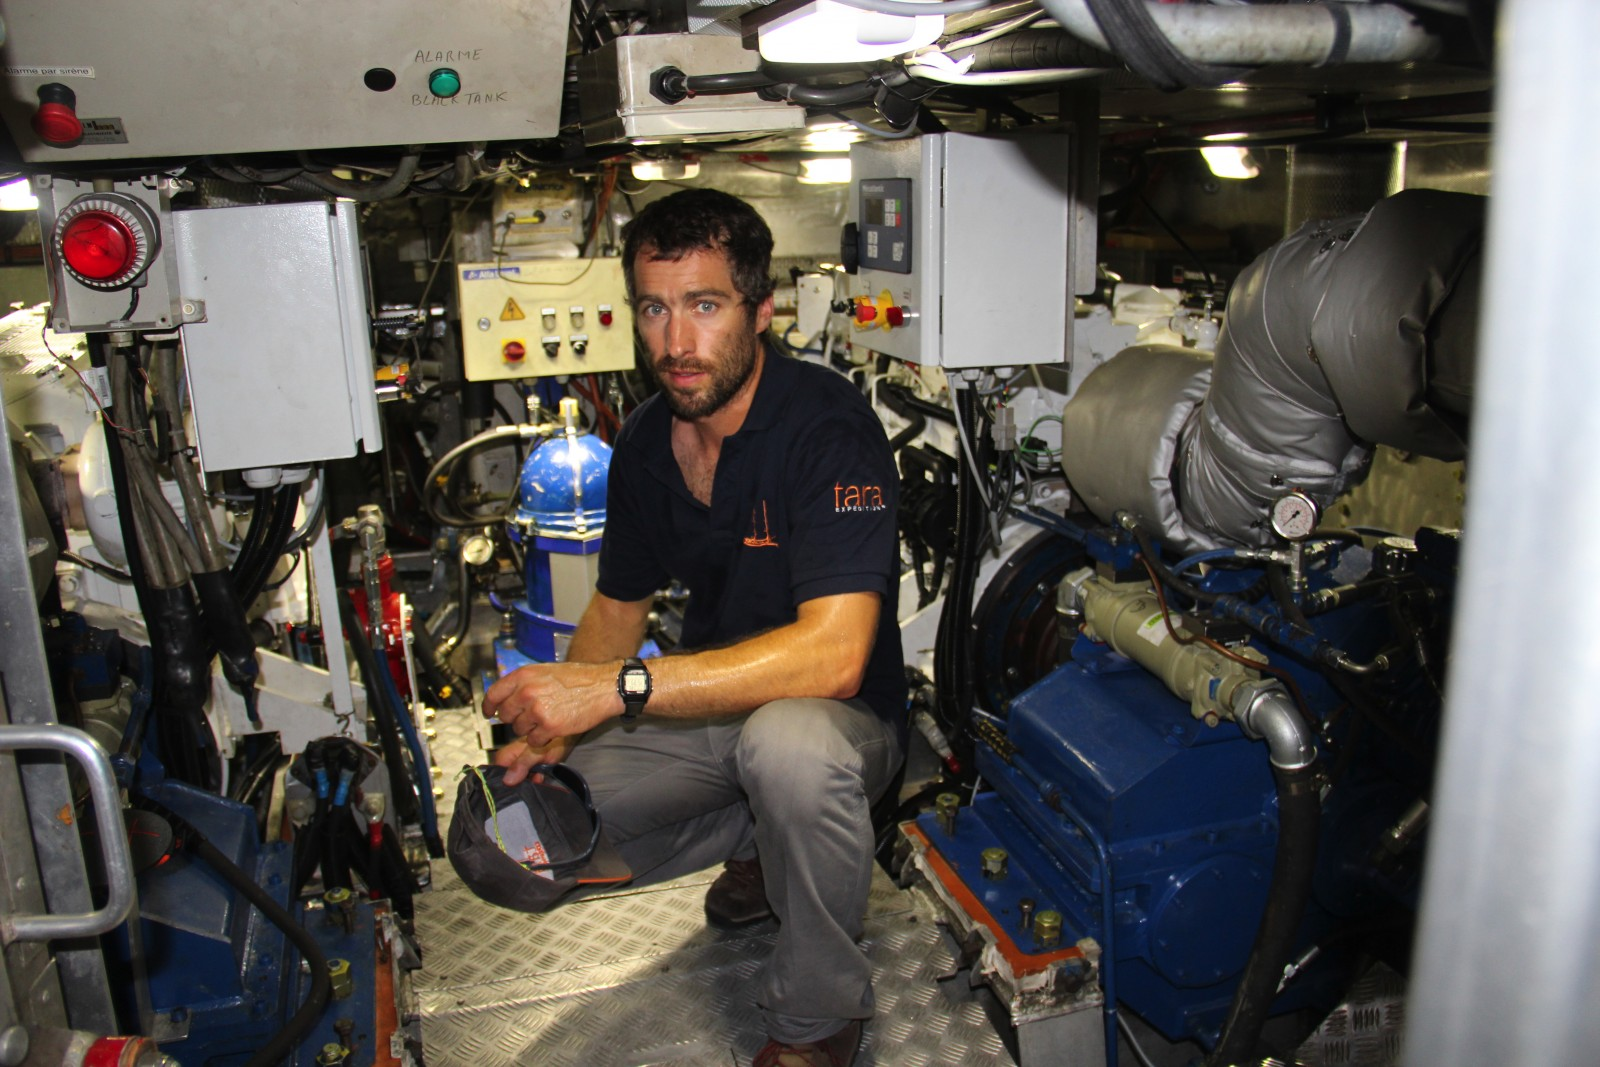 Capt. Samuel Audrain of France started working on S/Y Tara as a deckhand 10 years ago. He has been onboard with research expeditions around the globe. PHOTO BY SUZETTE COOK